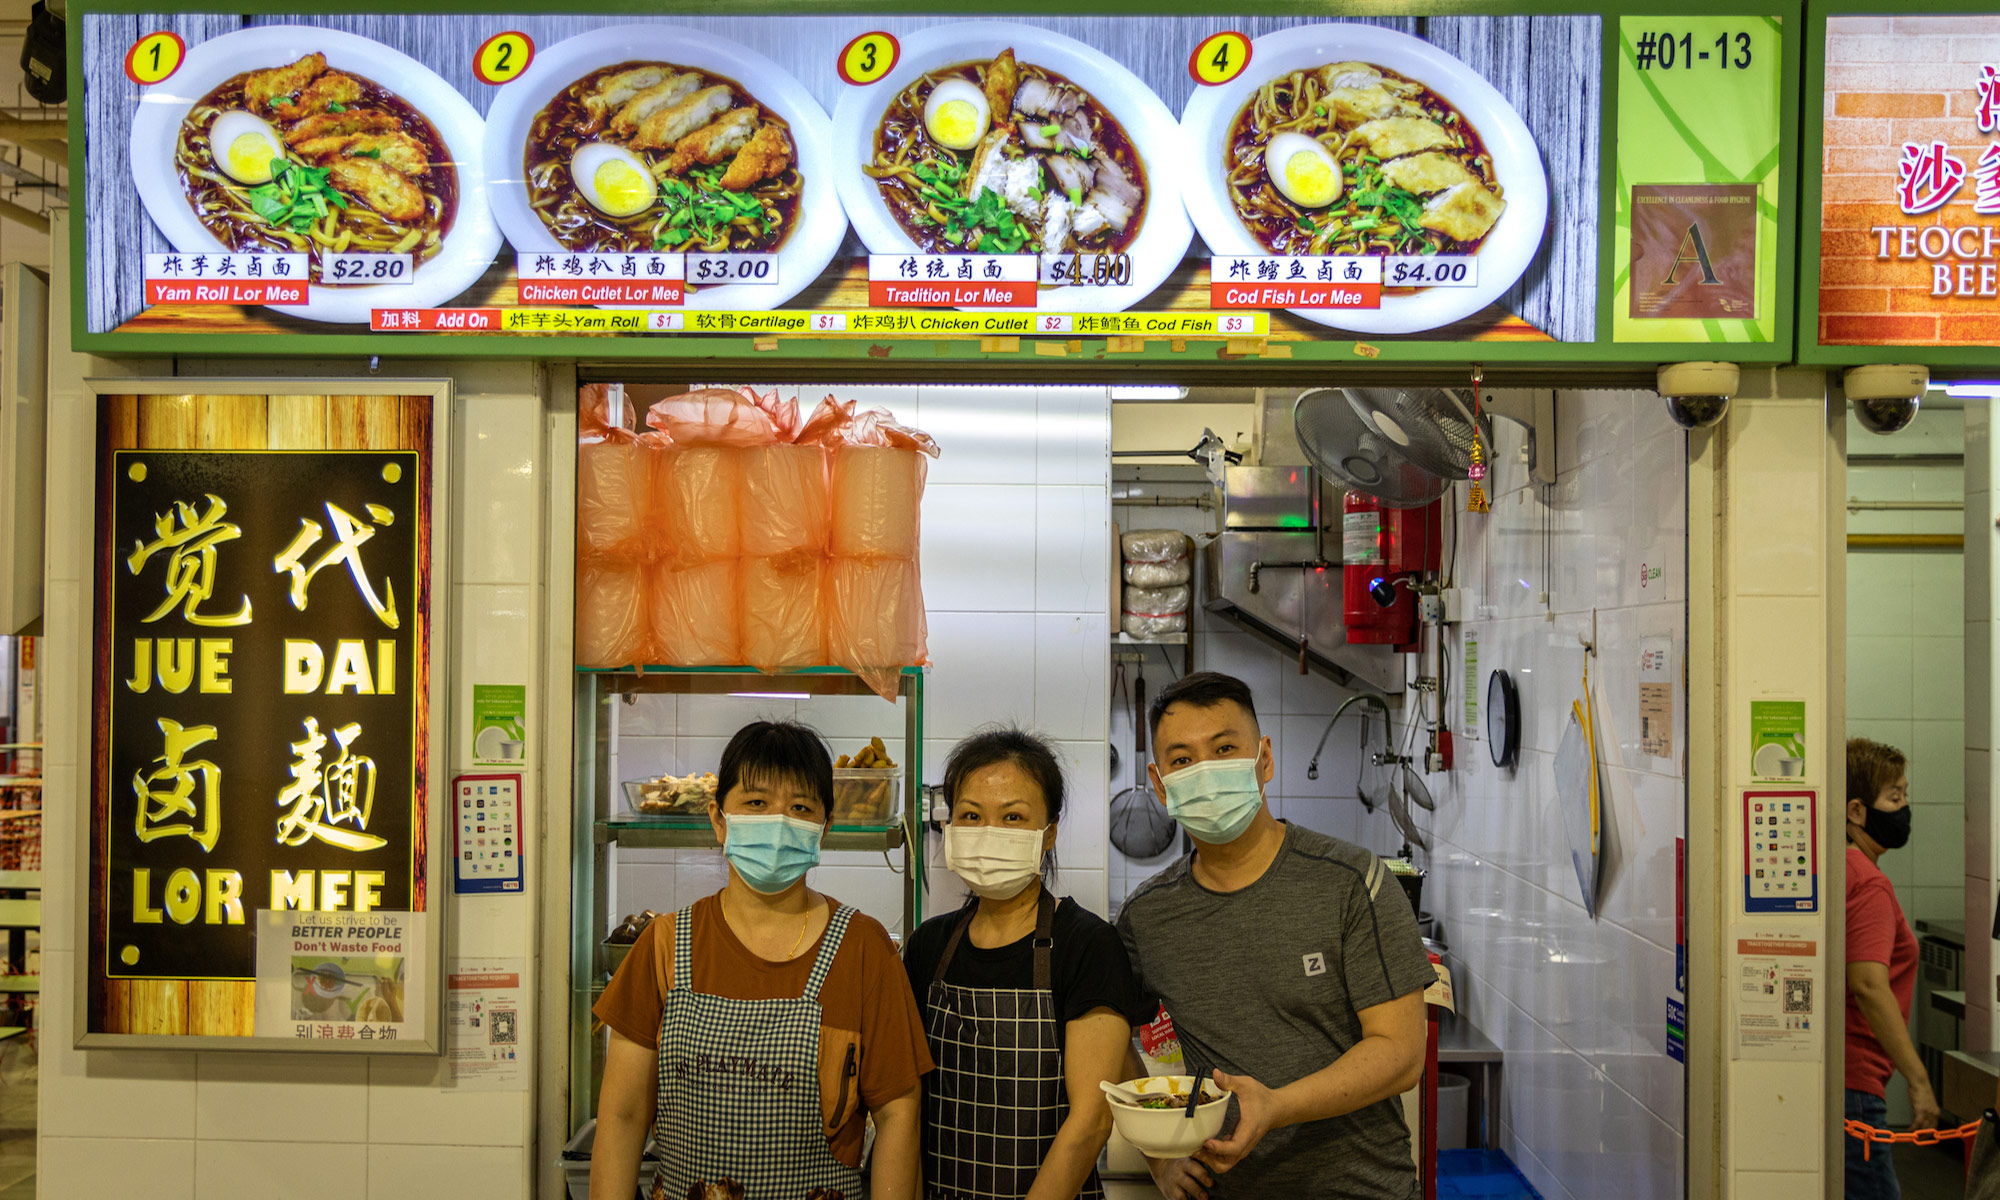 Owner of Jue Dai Lor Mee, available on WhyQ for delivery.